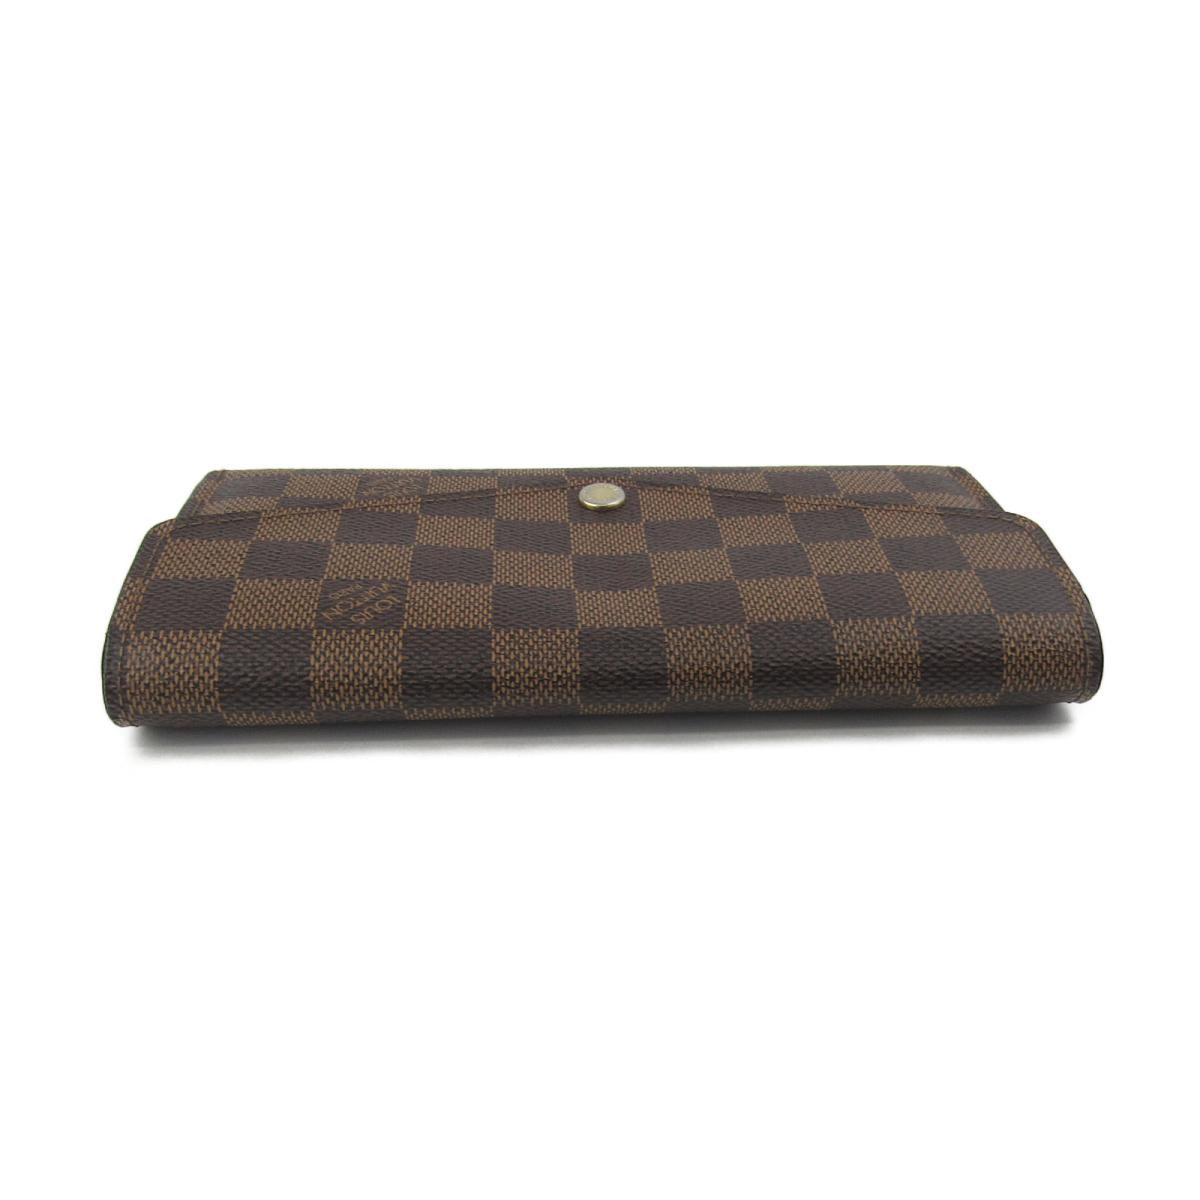 b52f32eecc036 BRANDOFF  Authentic LOUIS VUITTON Sarah Wallet Purse N63209 Damier ...